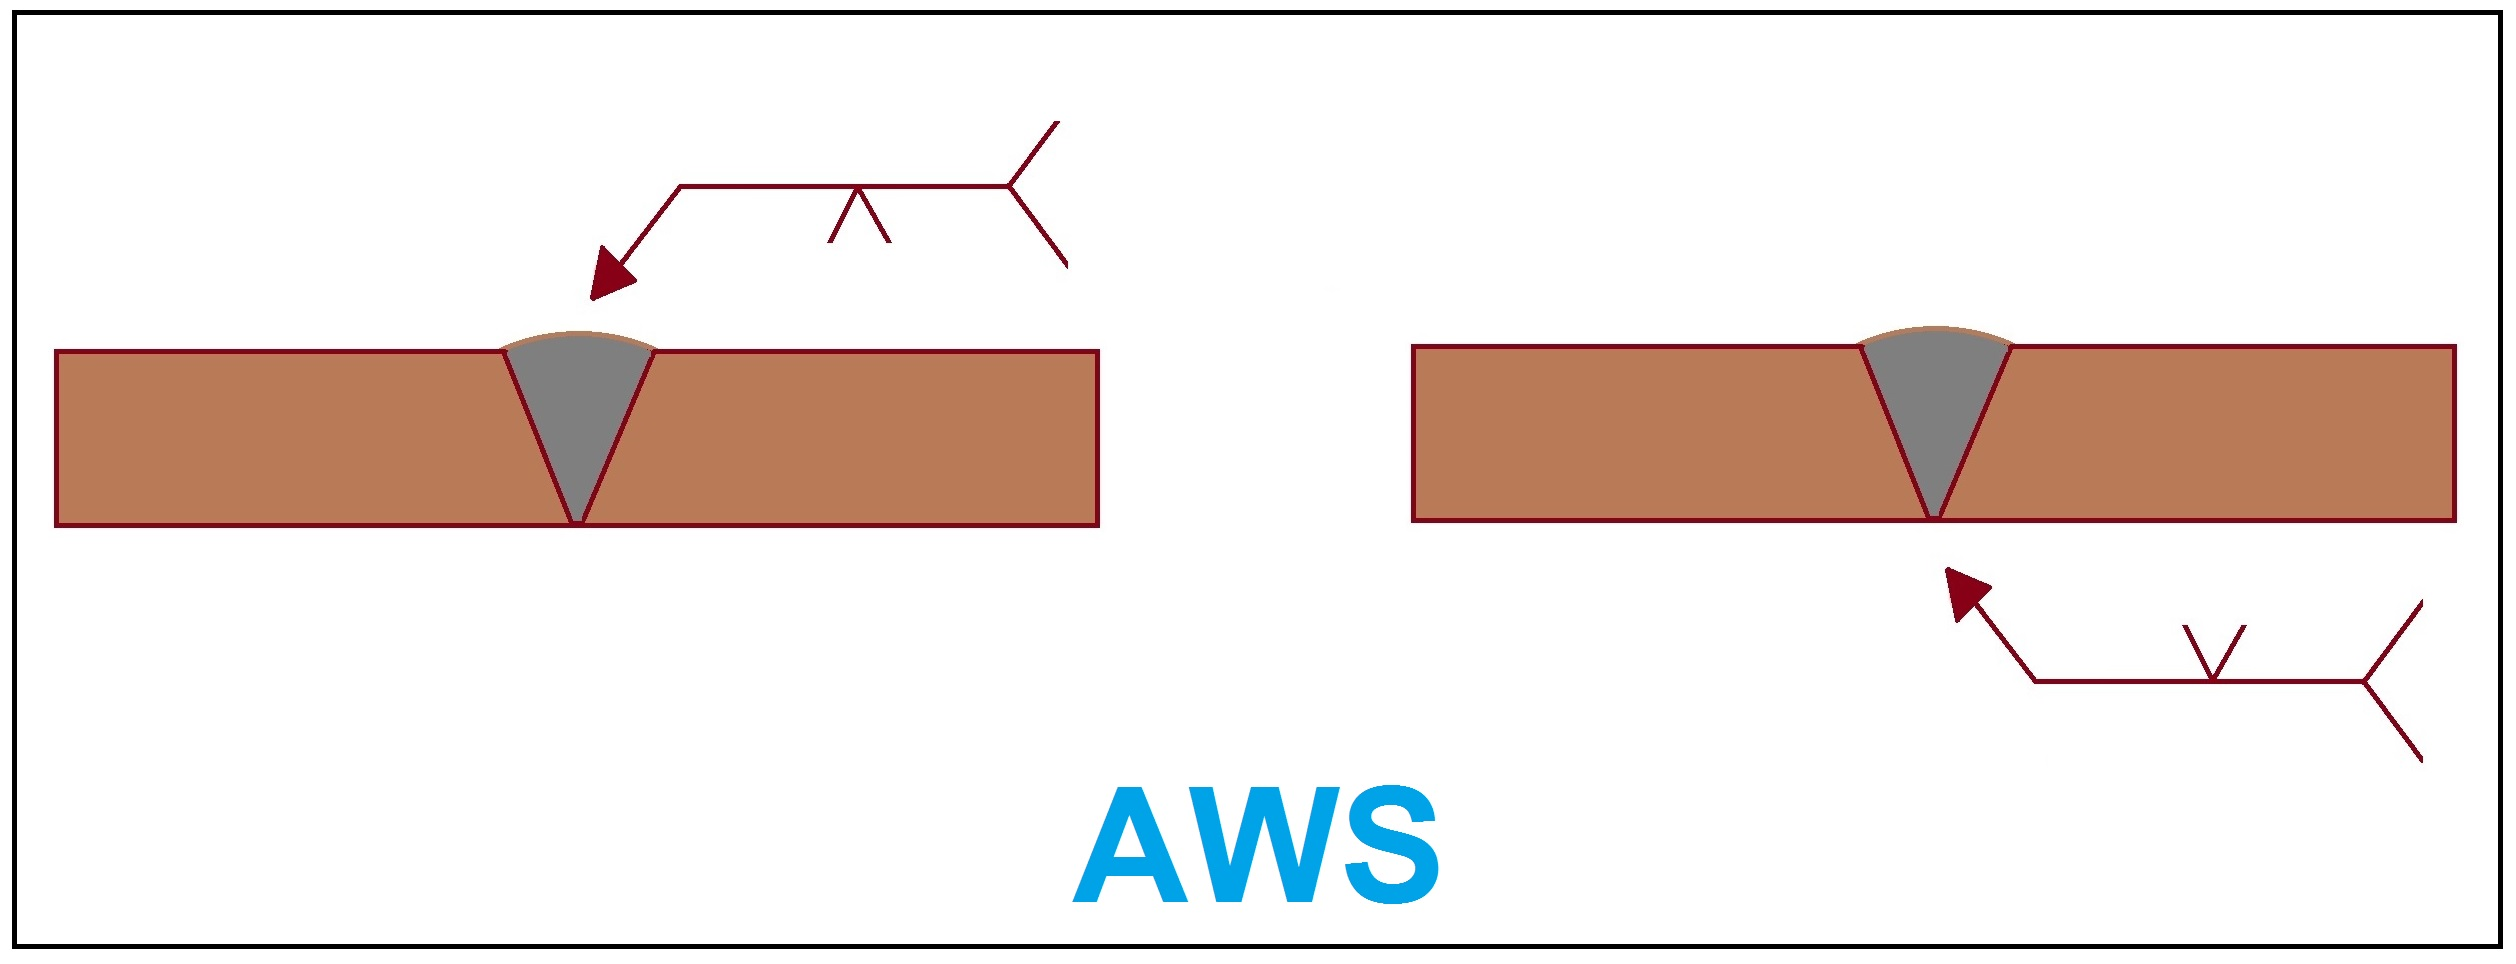 Aws Welding And Ndt